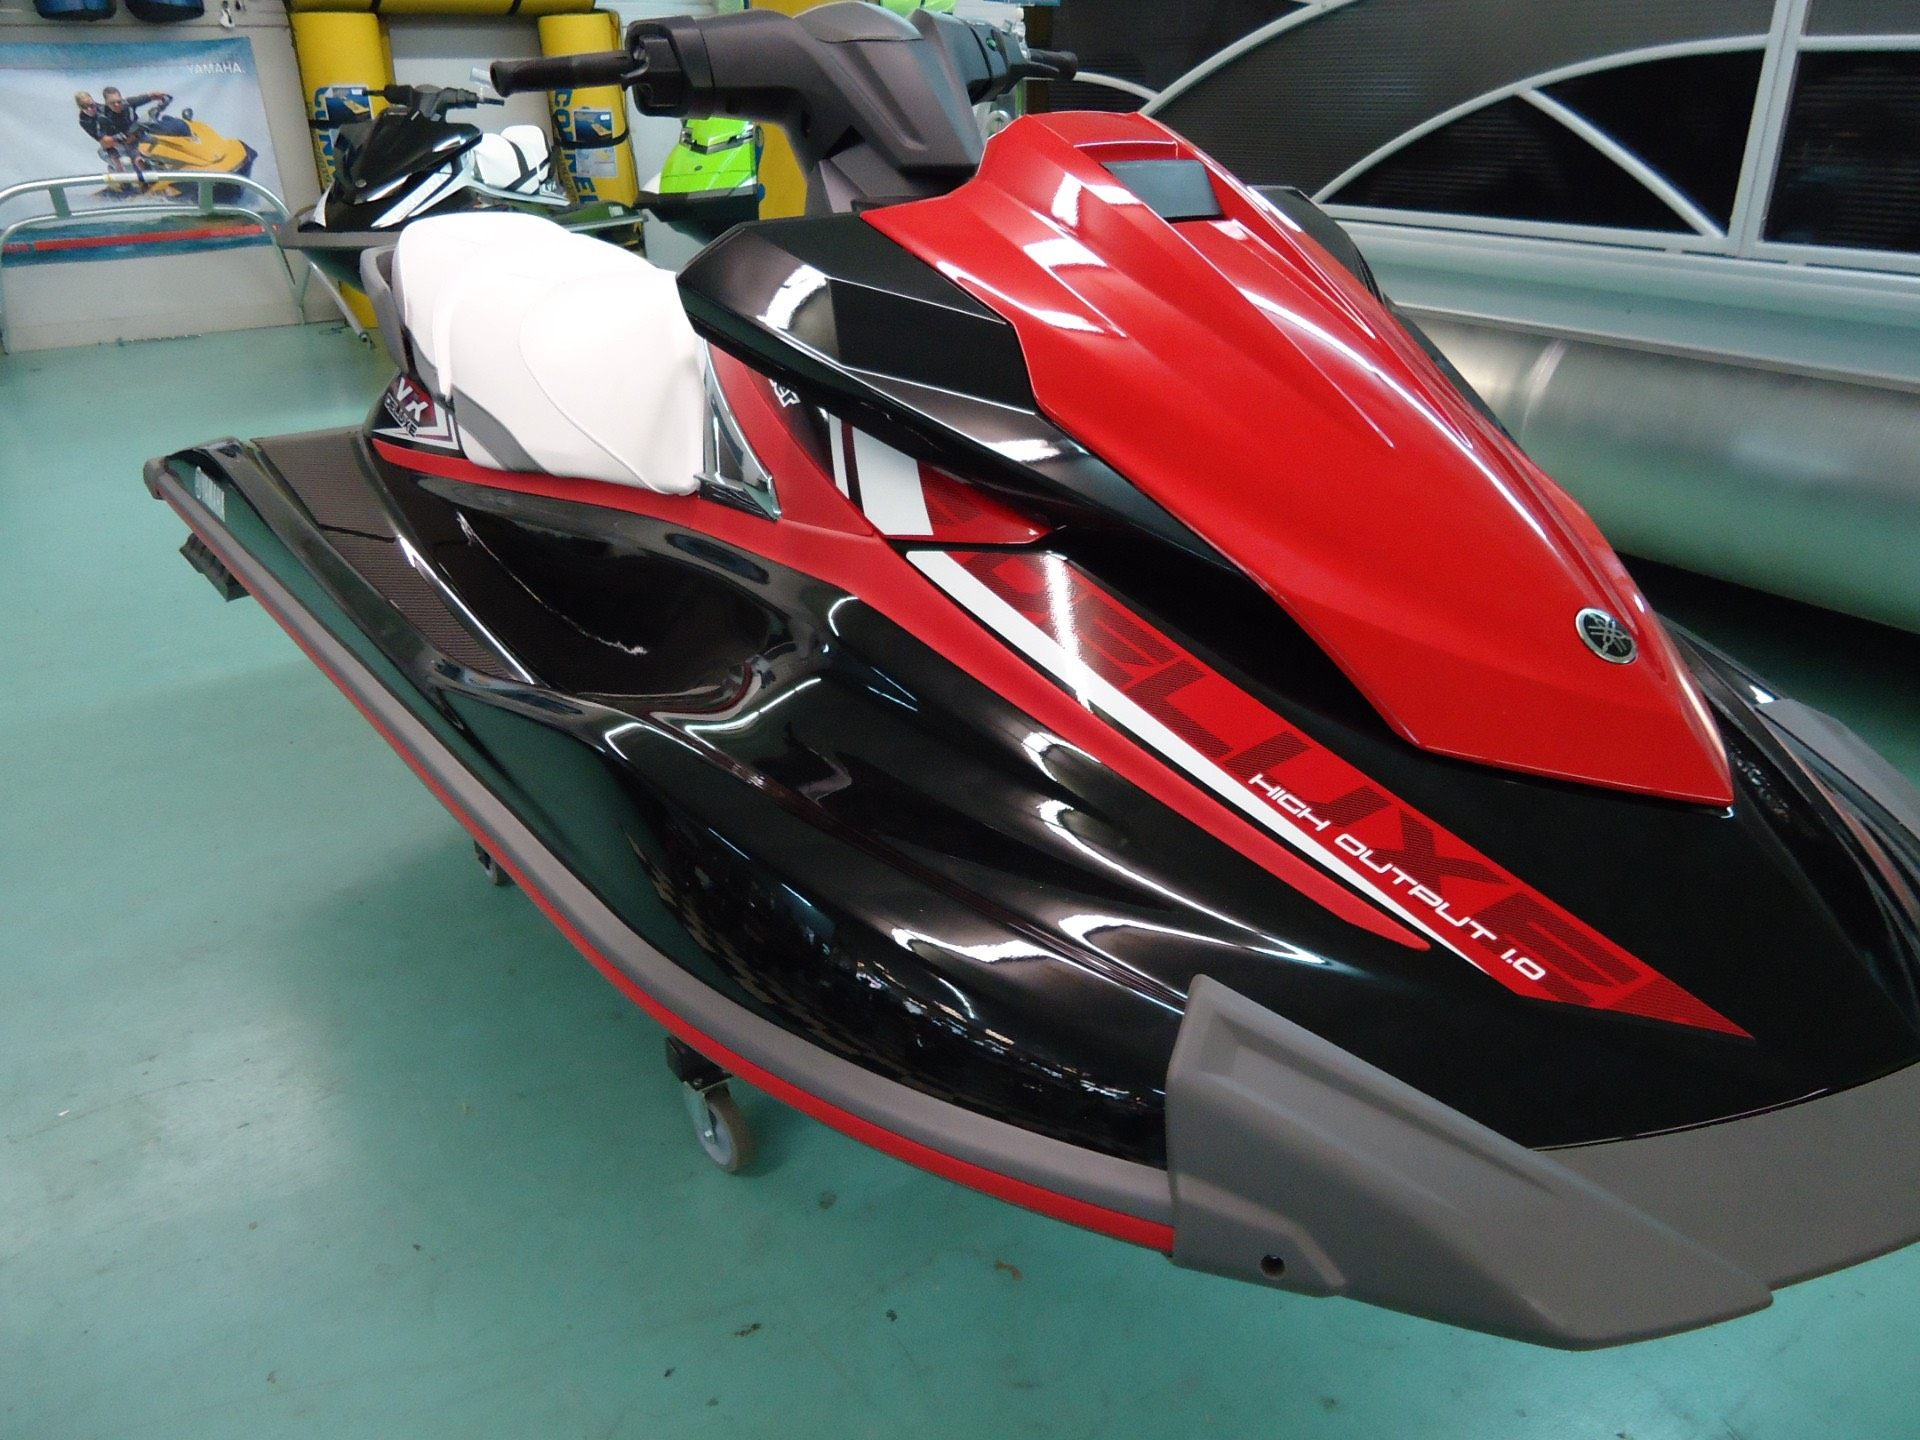 2016 Yamaha VX Deluxe for sale 24668